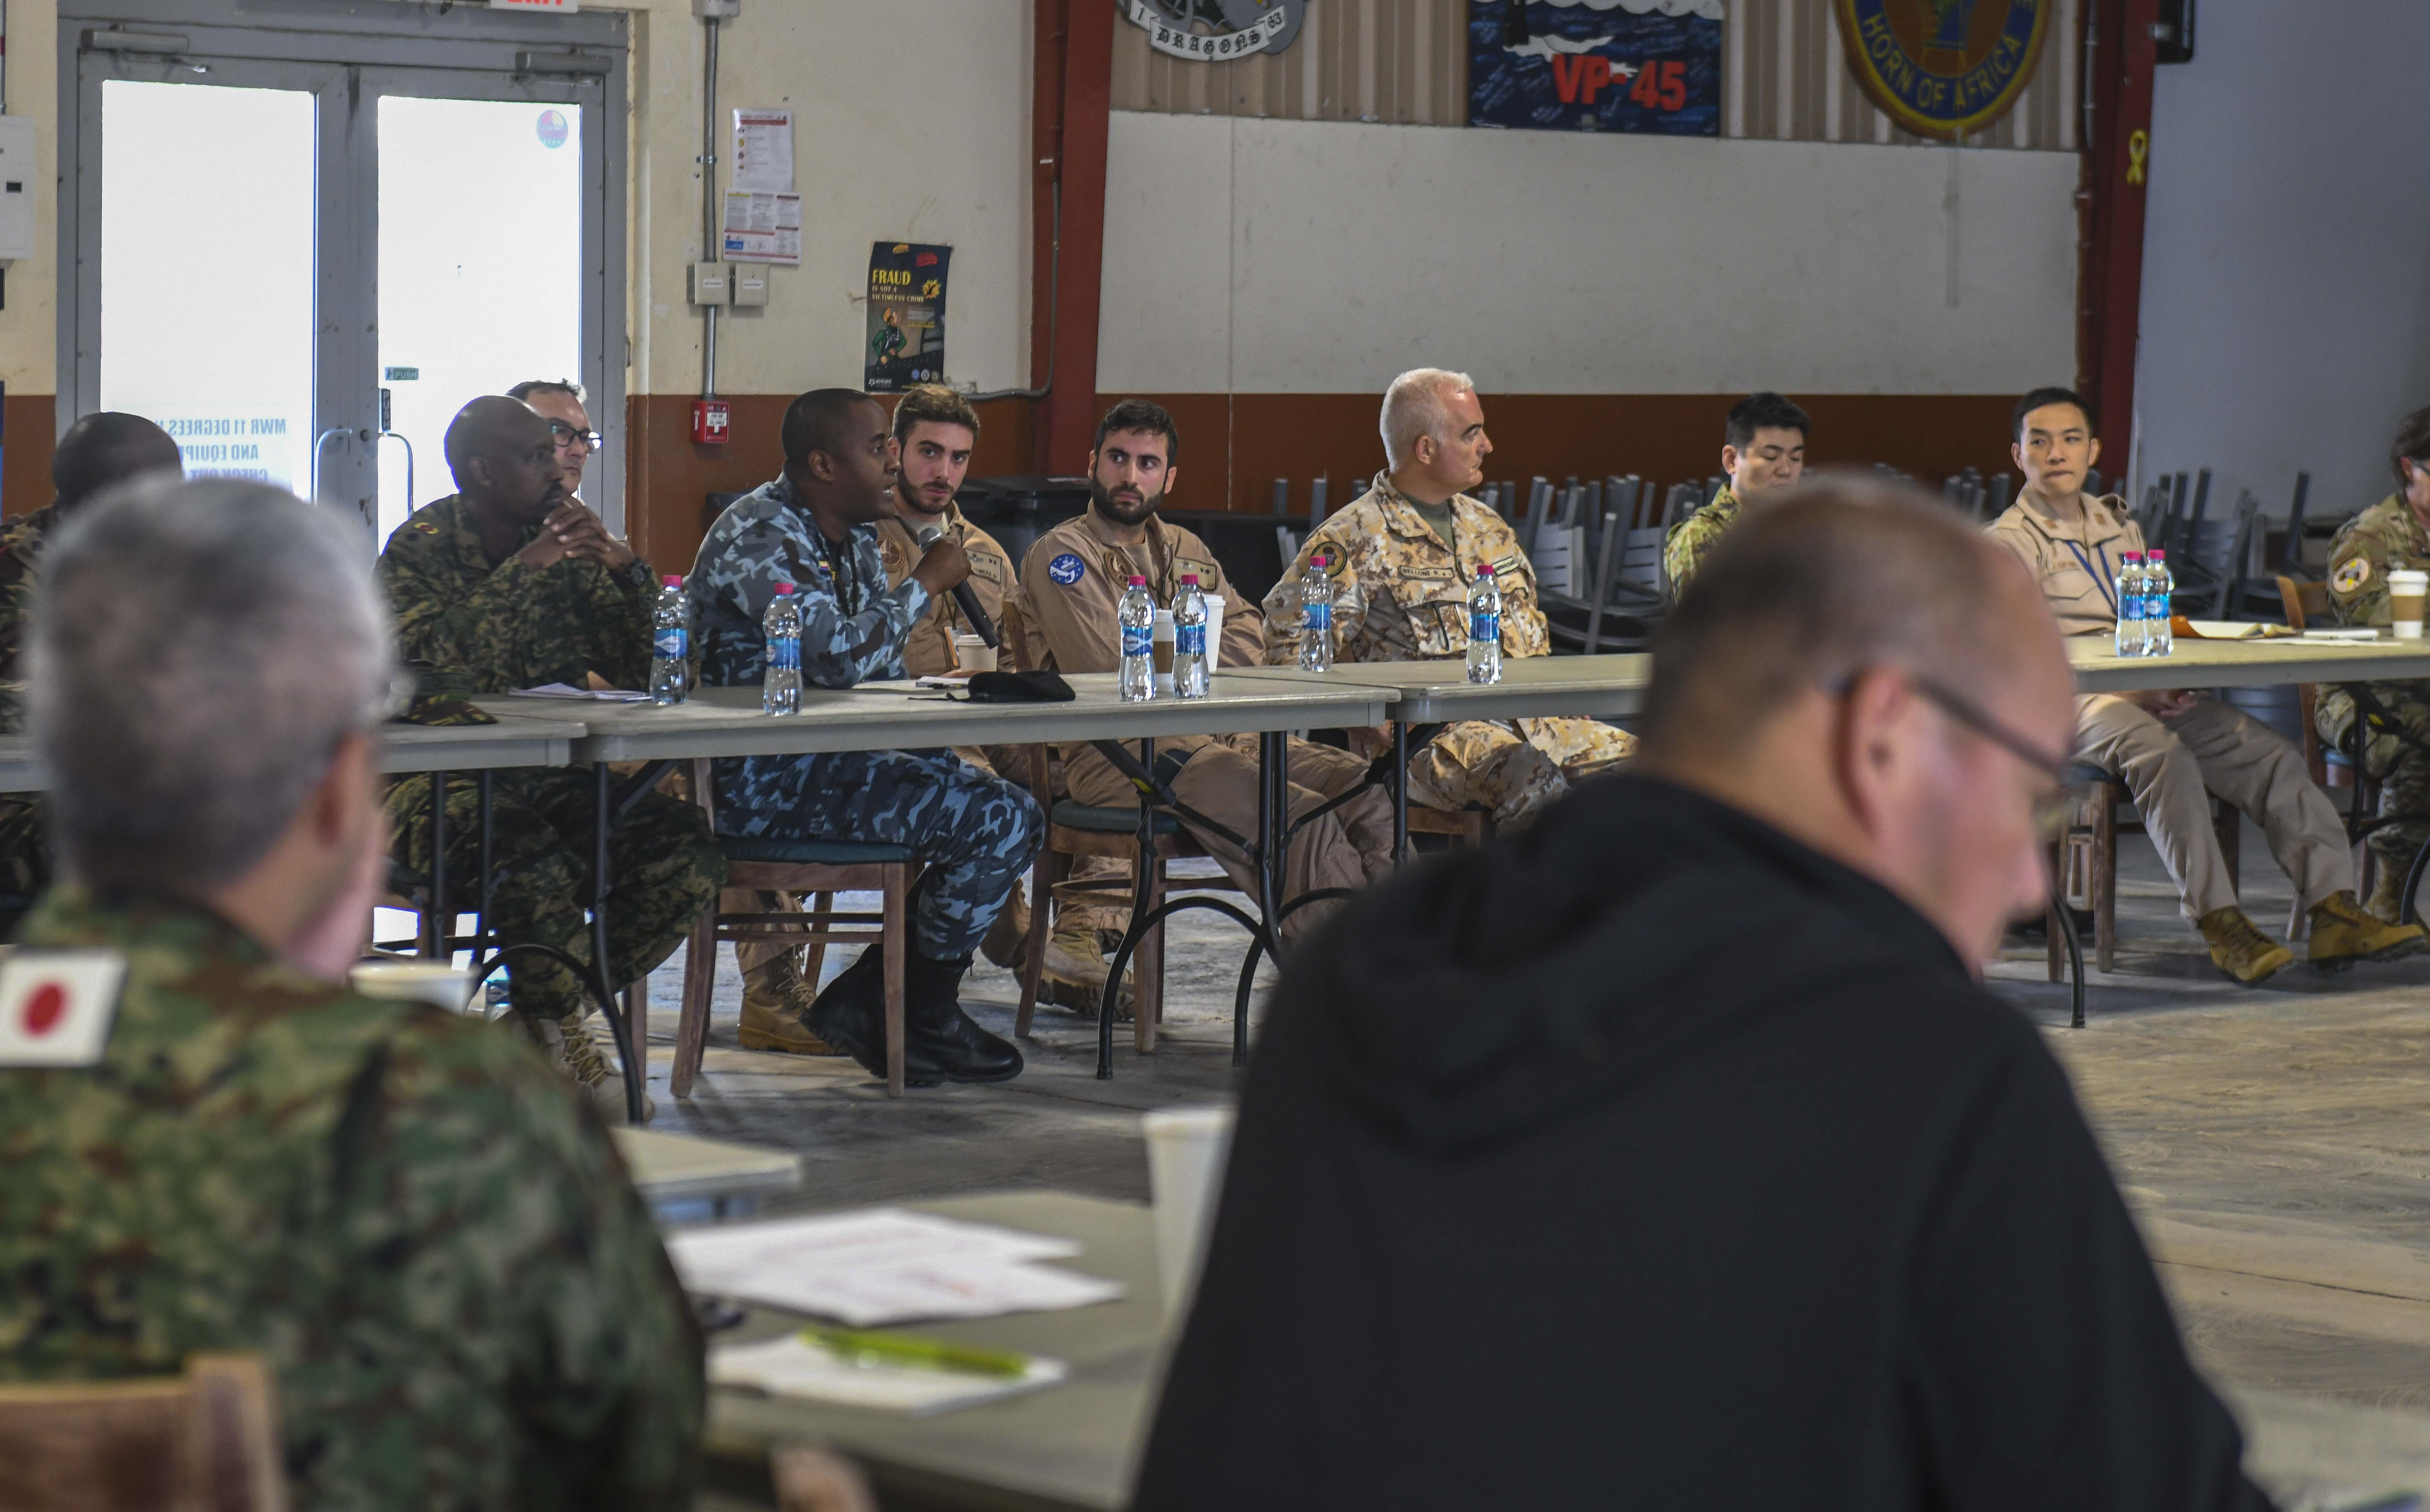 Multinational service members and representatives take part in a tabletop discussion during an annual noncombatant evacuation operation (NEO) exercise held at Camp Lemonnier, Djibouti, Oct. 4, 2019. Service members assigned to Combined Joint Task Force-Horn of Africa (CJTF-HOA) worked together with the Japan Self-Defense Force (JSDF) to share capabilities during the multi-day event, which was held from Oct. 1-4. (U.S. Air Force photo by Senior Airman Gabrielle Spalding)